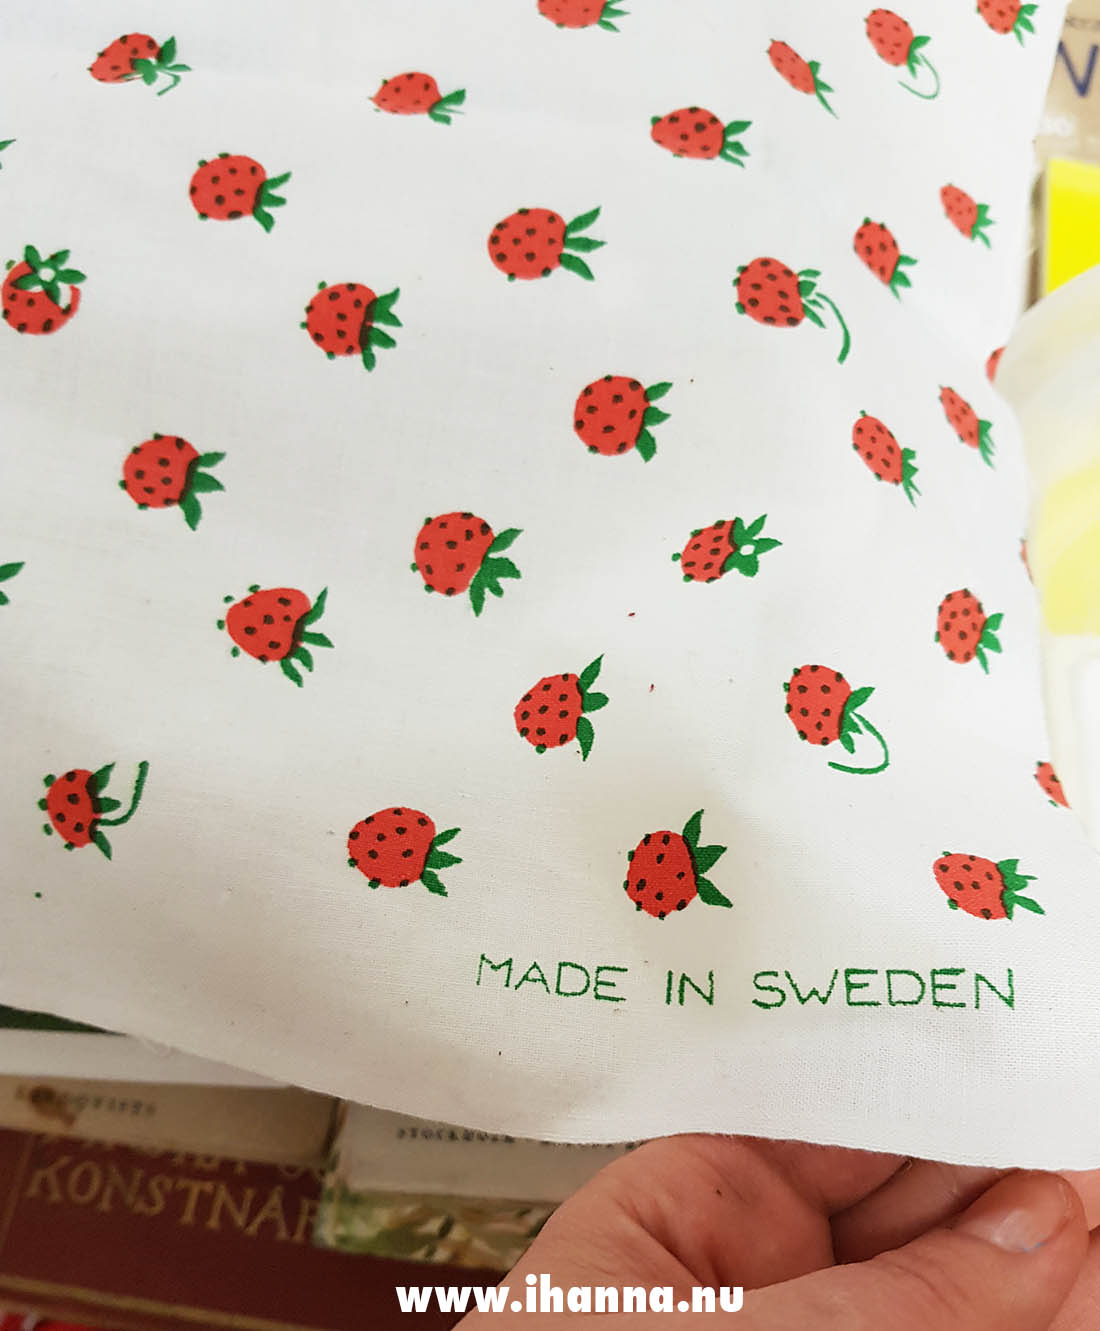 Strawberry fabric printed in Sweden by Jobs, photo by Hanna Andersson #Sweden